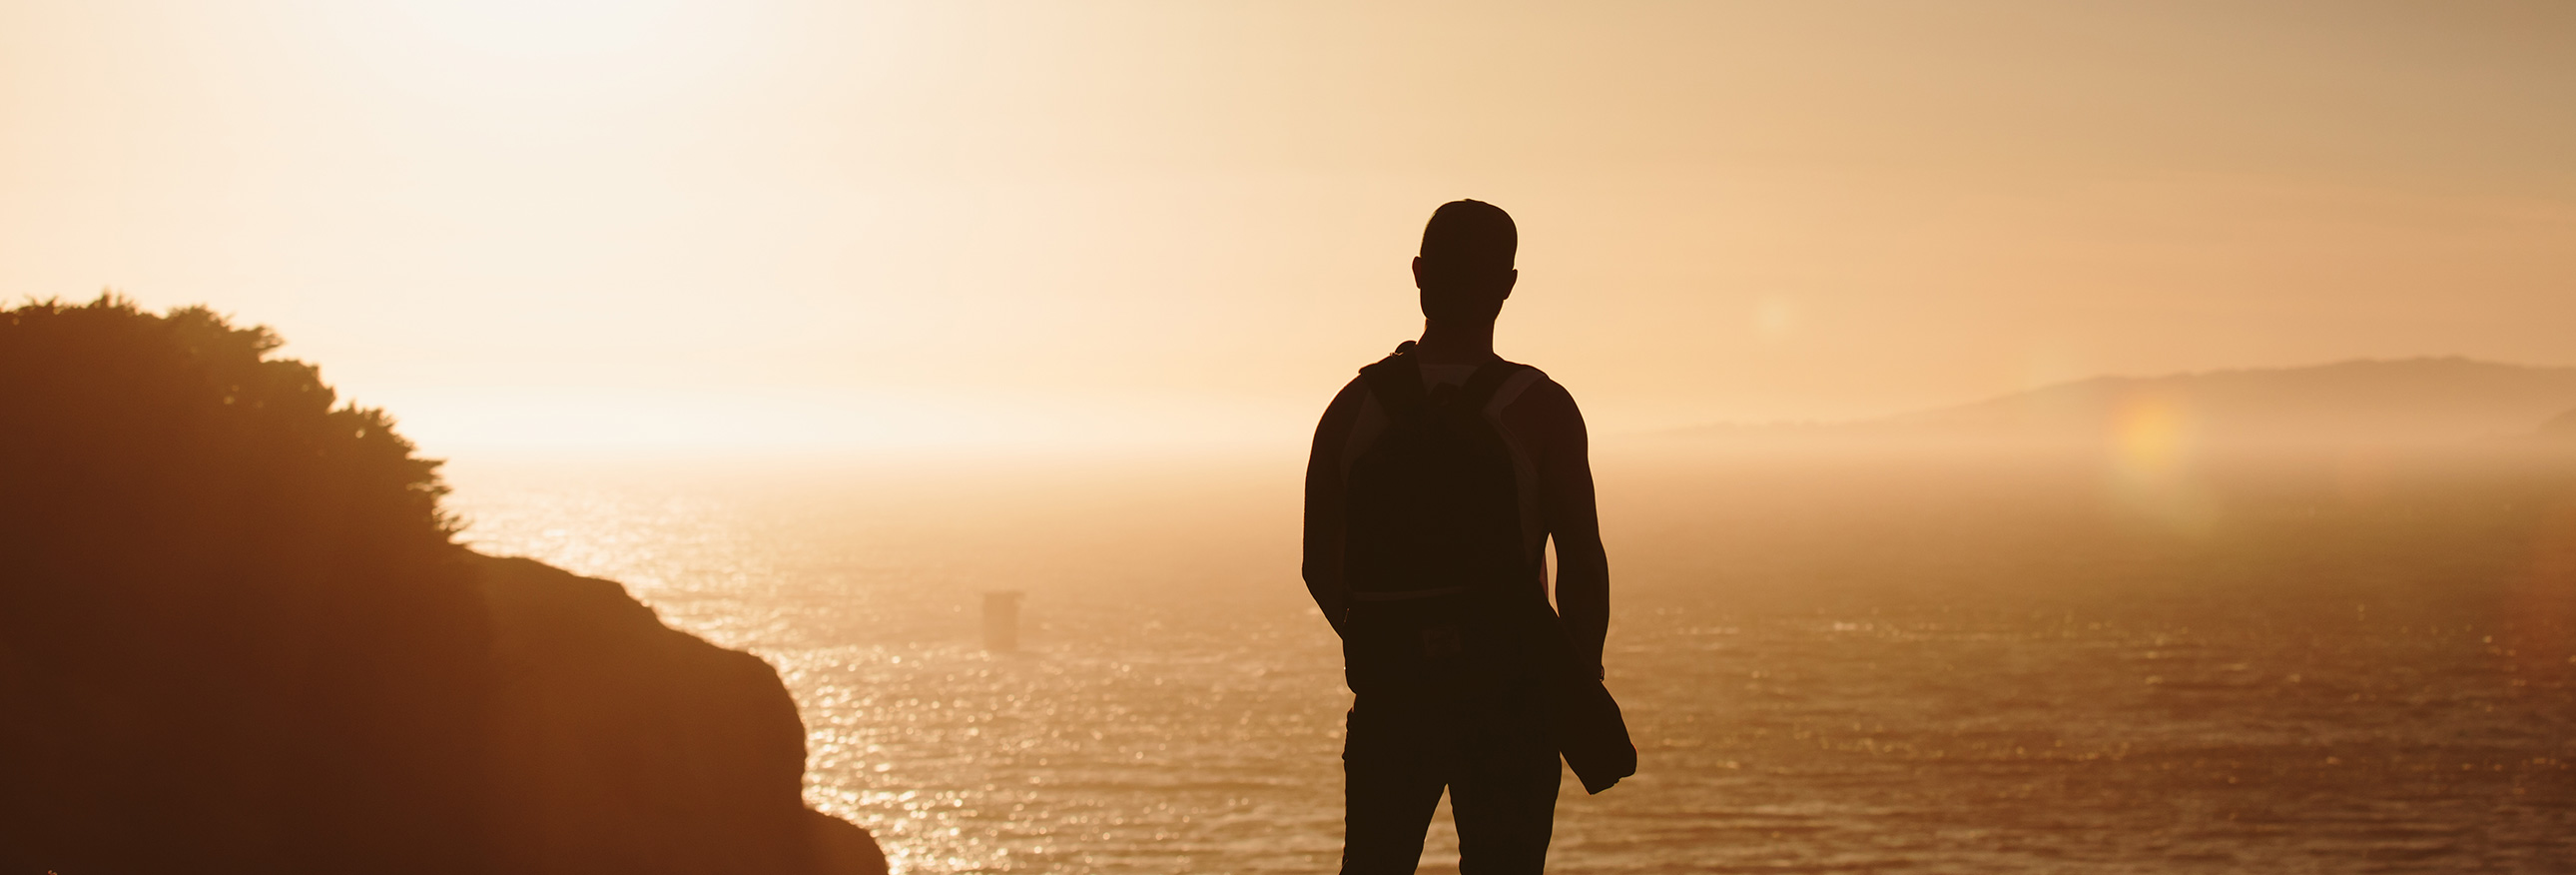 silhouette of a man overlooking water at sunset